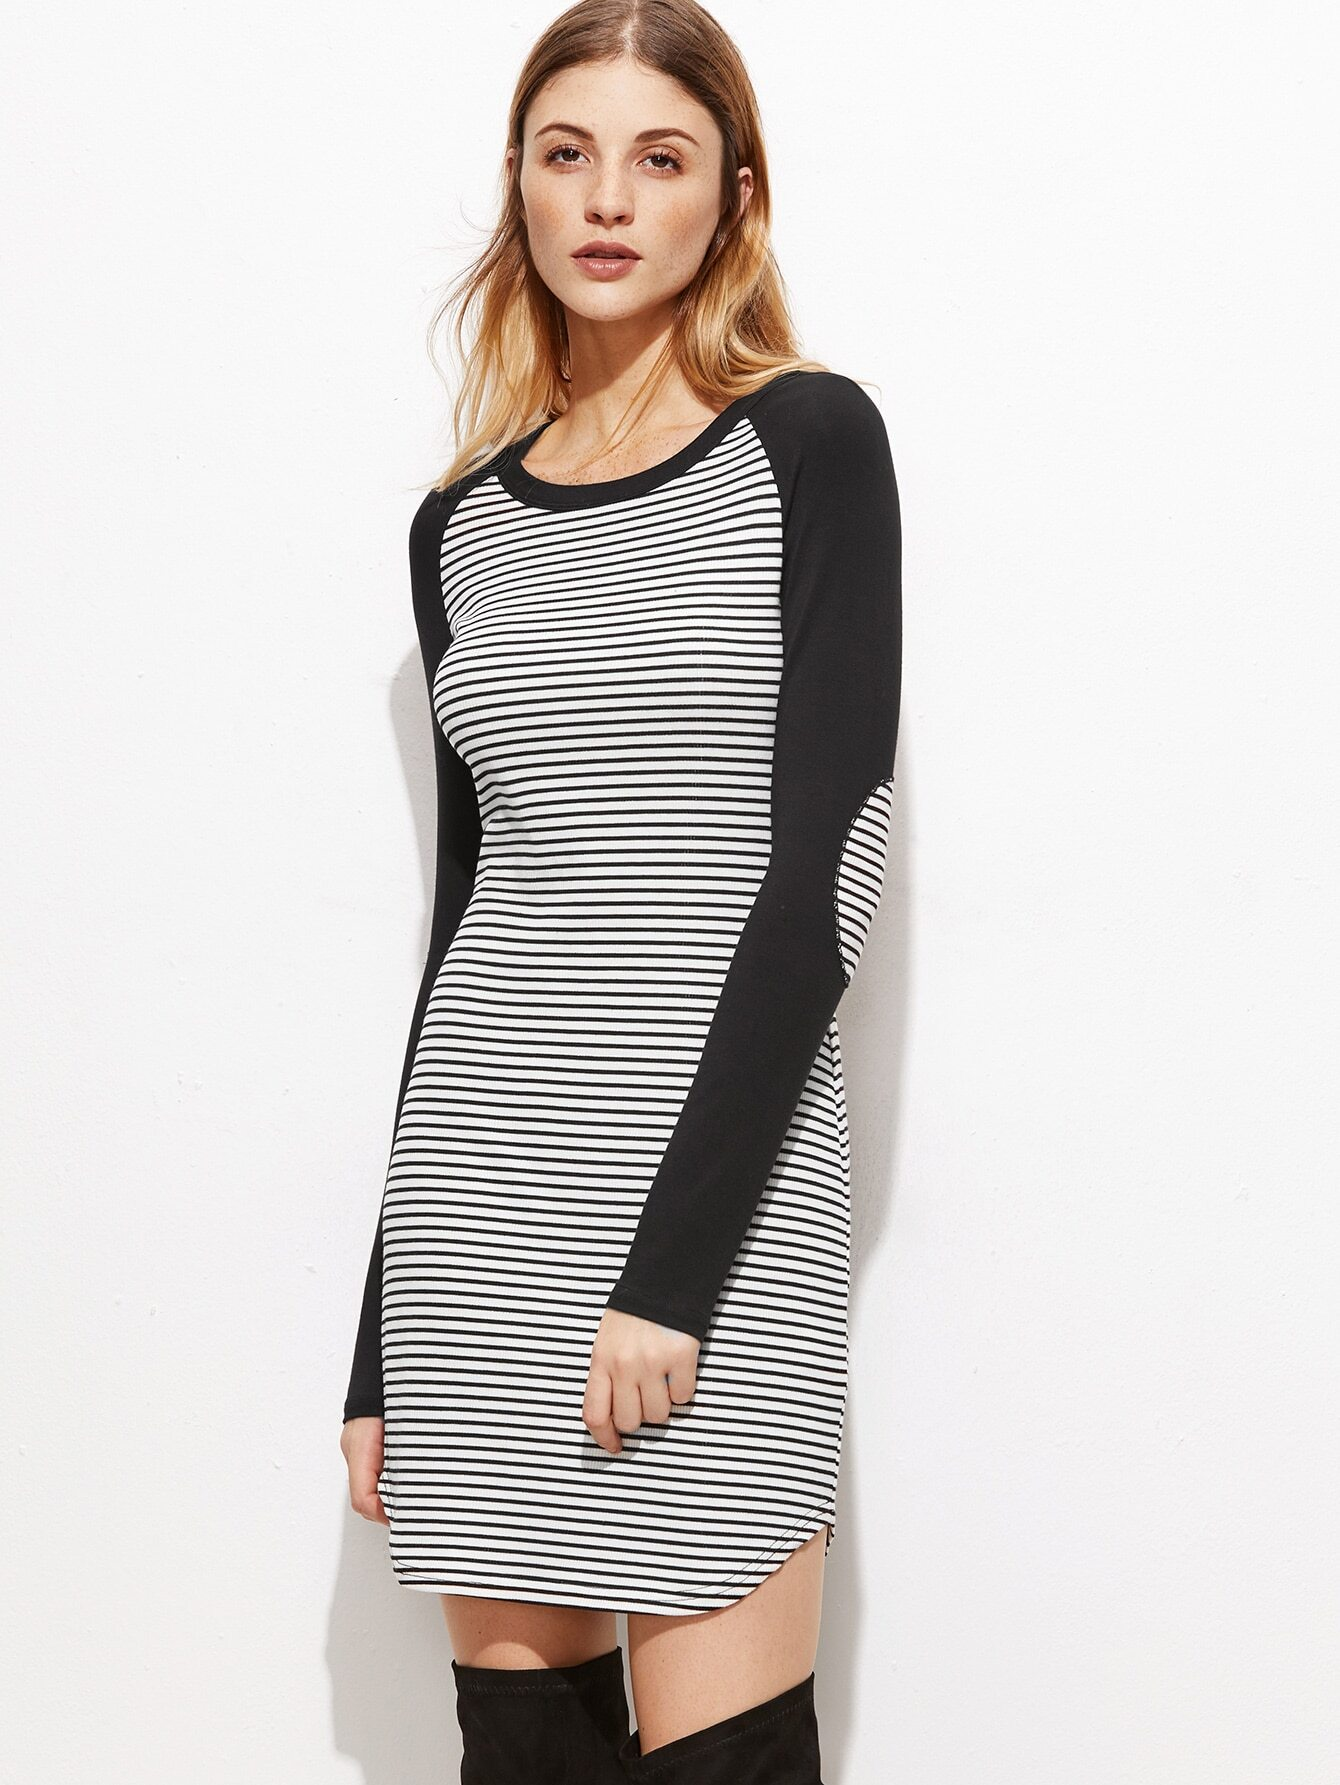 Black And White Striped Elbow Patch Contrast Sleeve Dress dress161026701